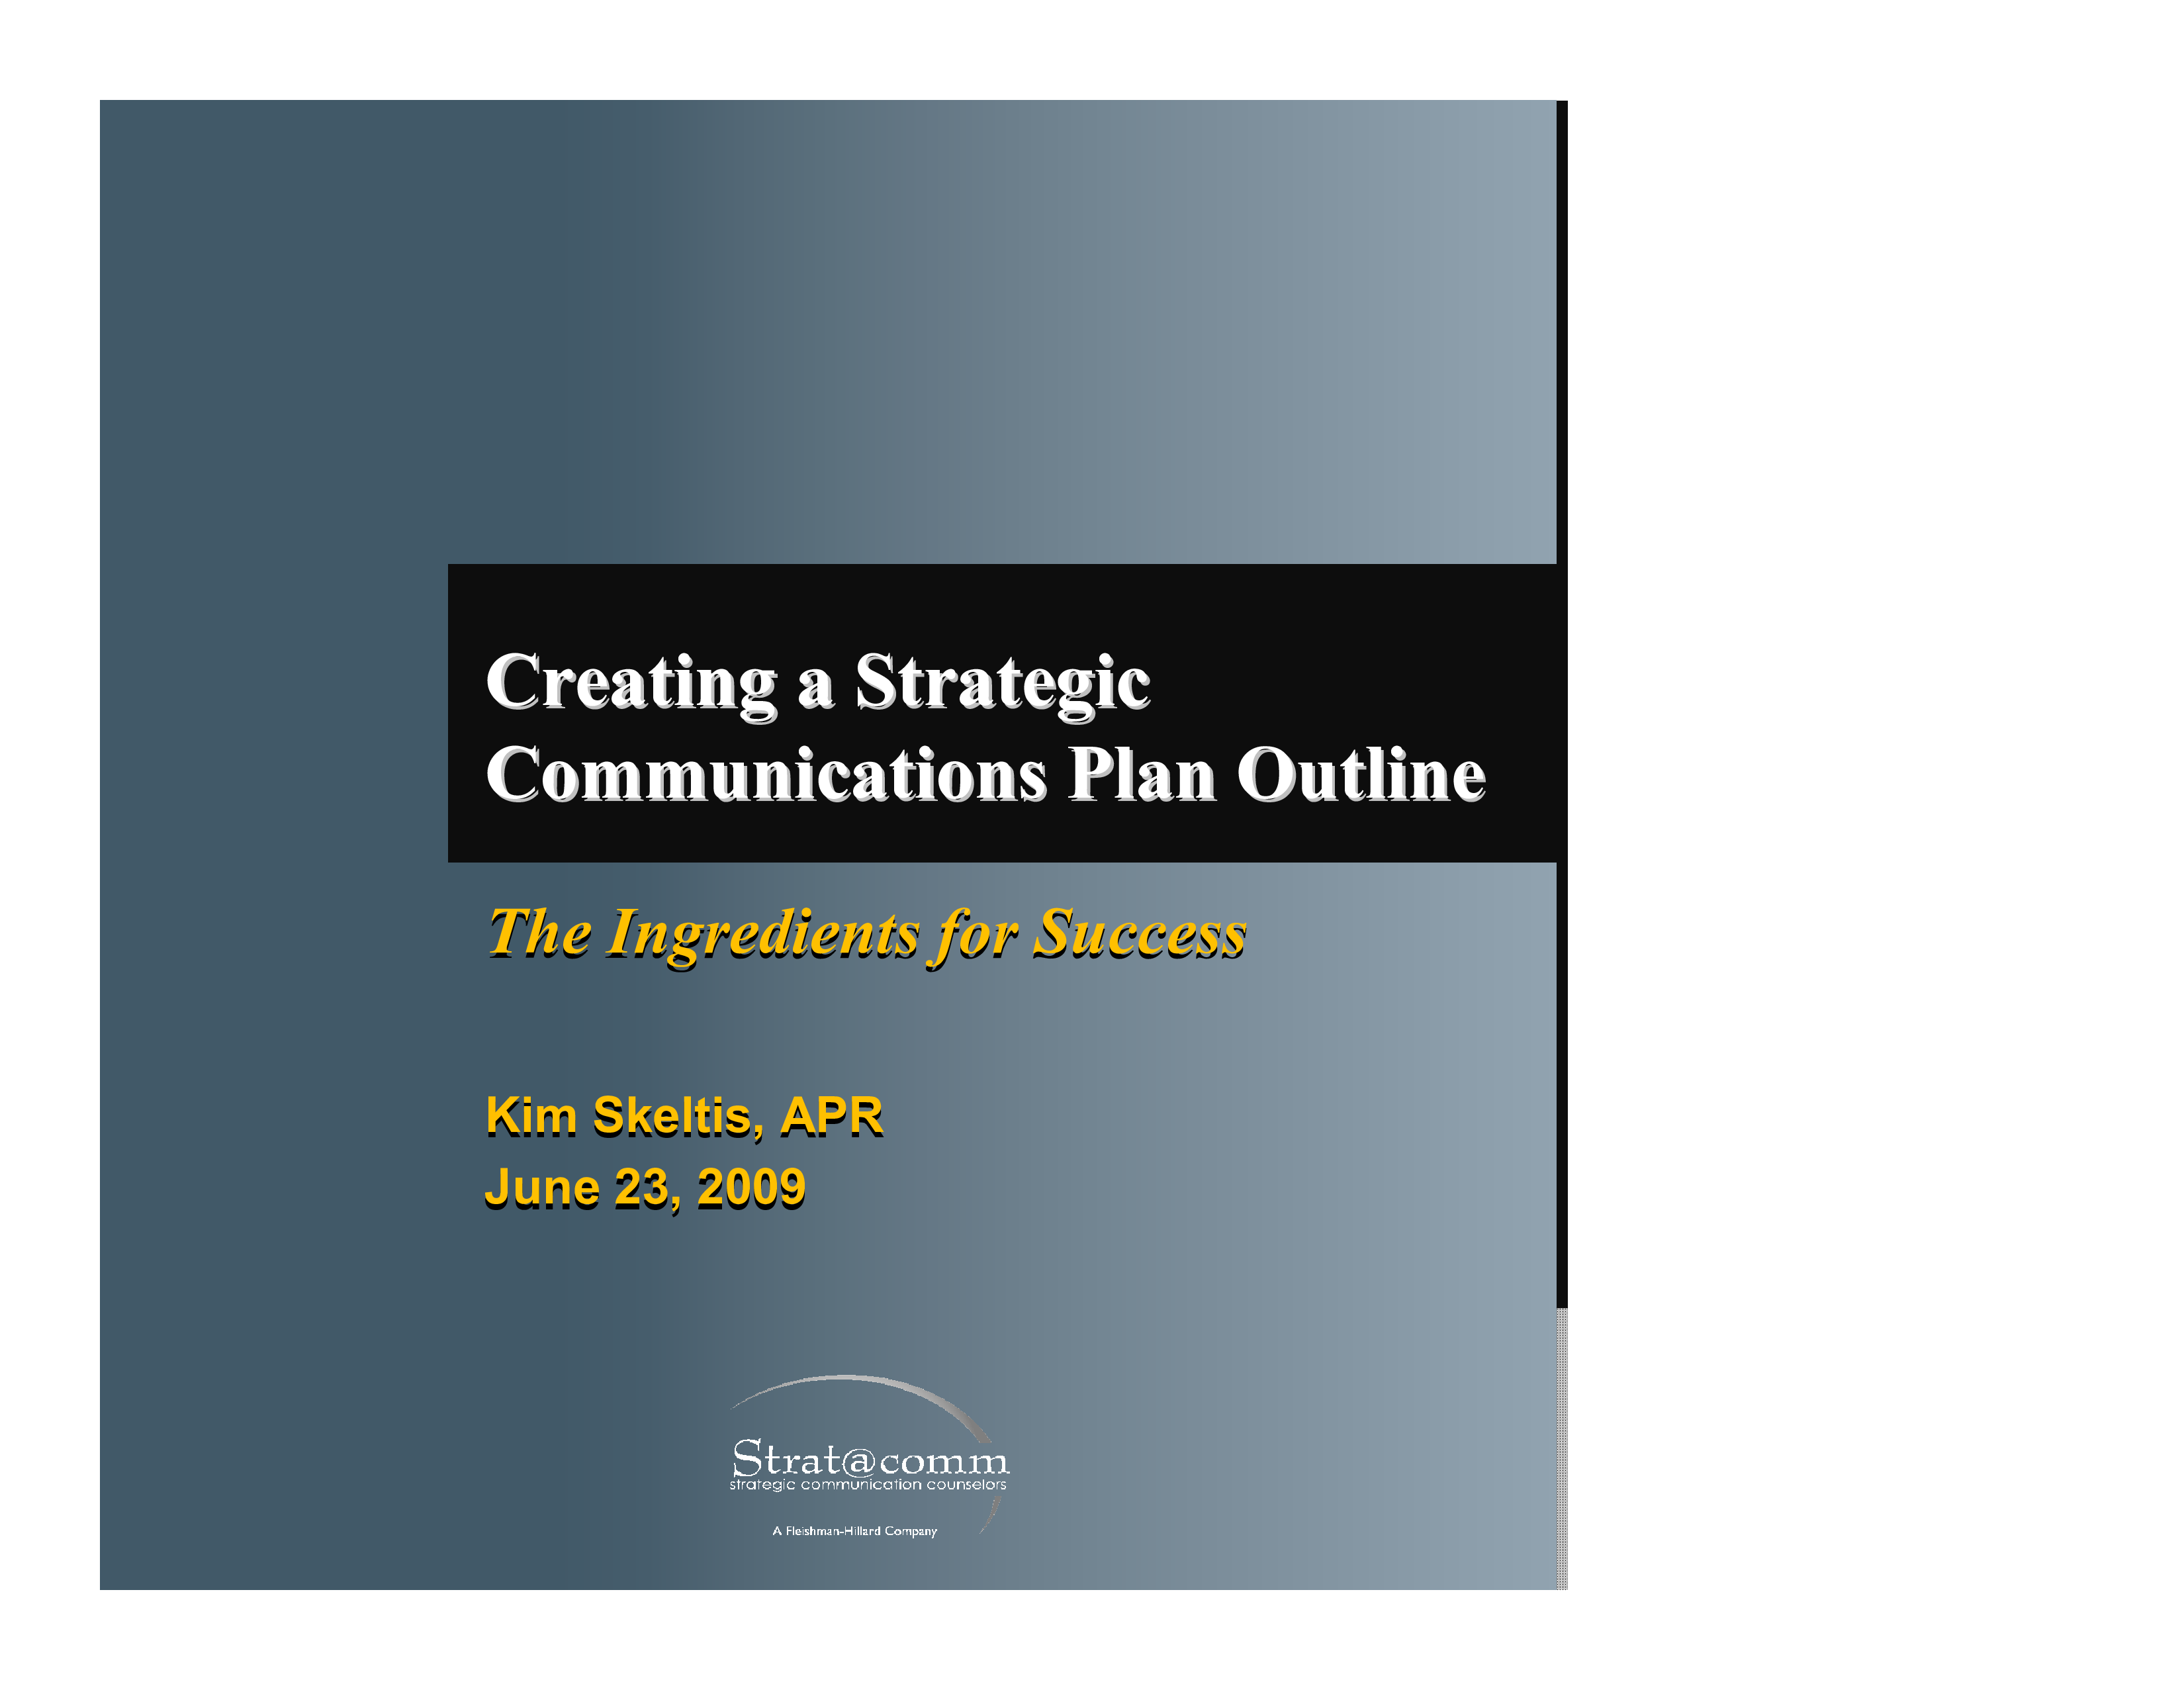 Free Strategic Communication Plan Outline Templates At